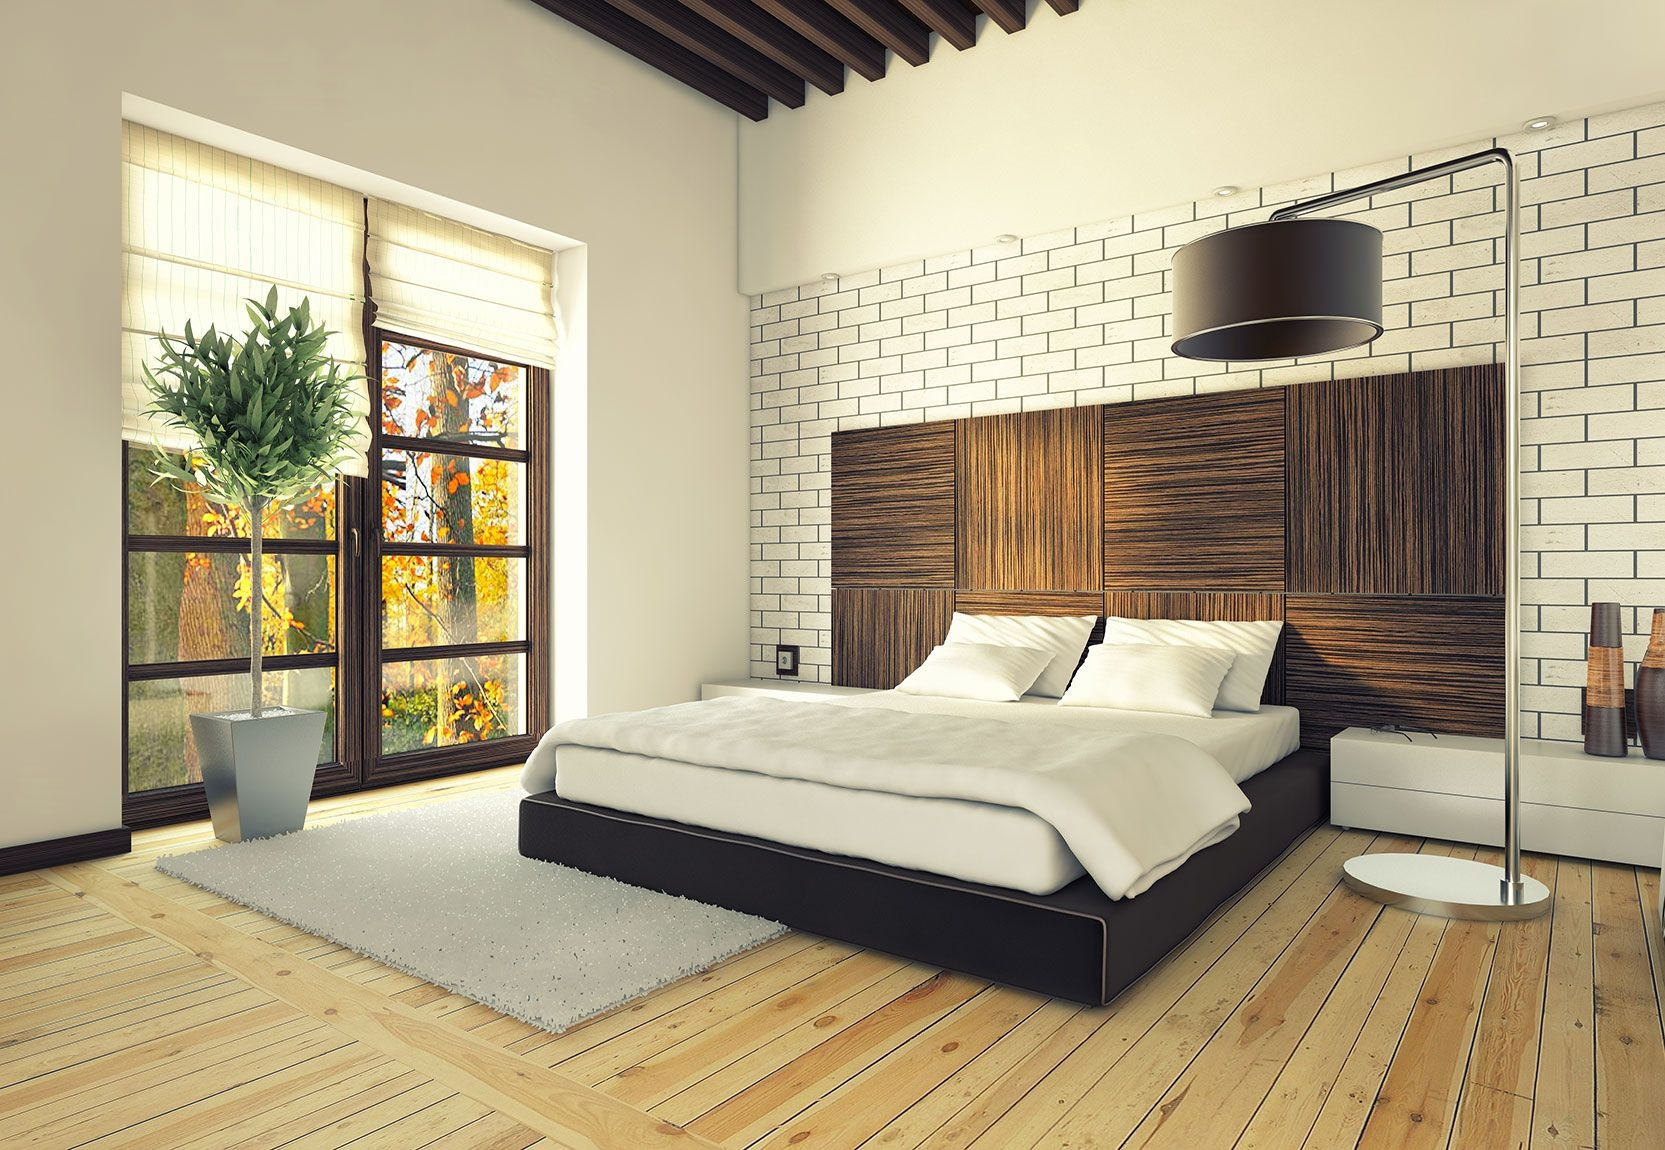 Is It Tricky To Choose Bedroom Interior Design